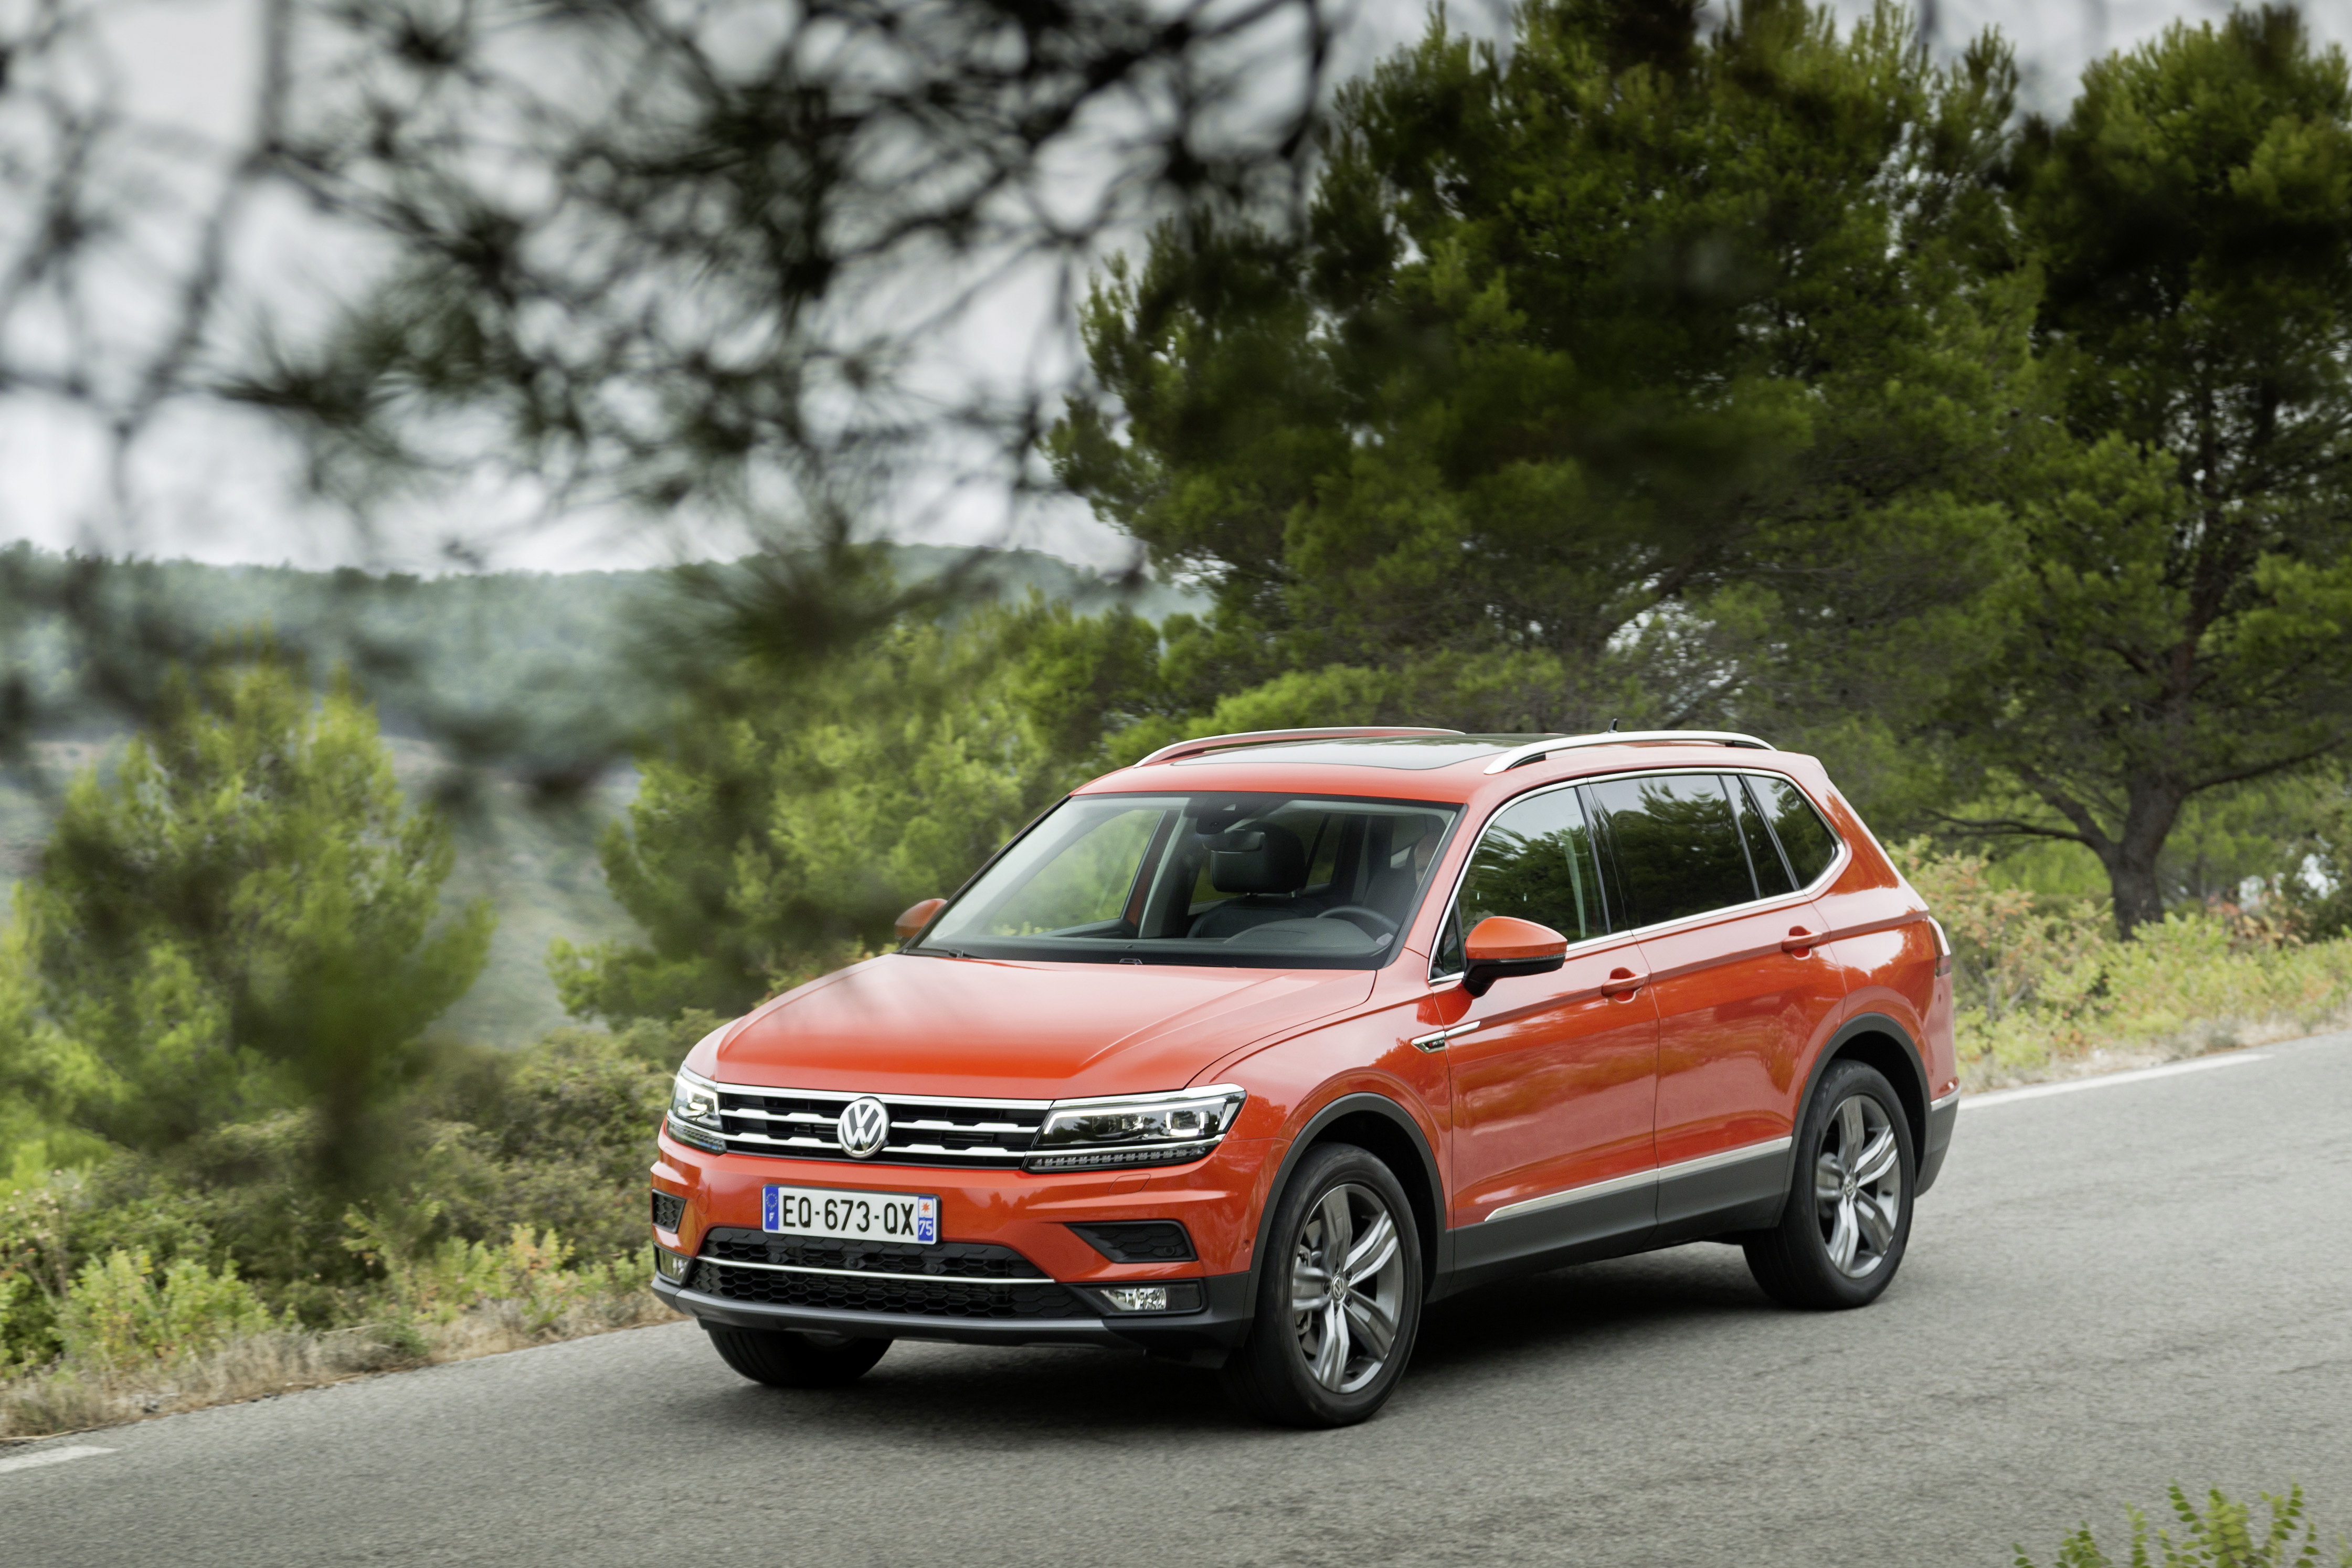 essai volkswagen tiguan allspace l attaque d un nouveau segment link2fleet for a smarter. Black Bedroom Furniture Sets. Home Design Ideas